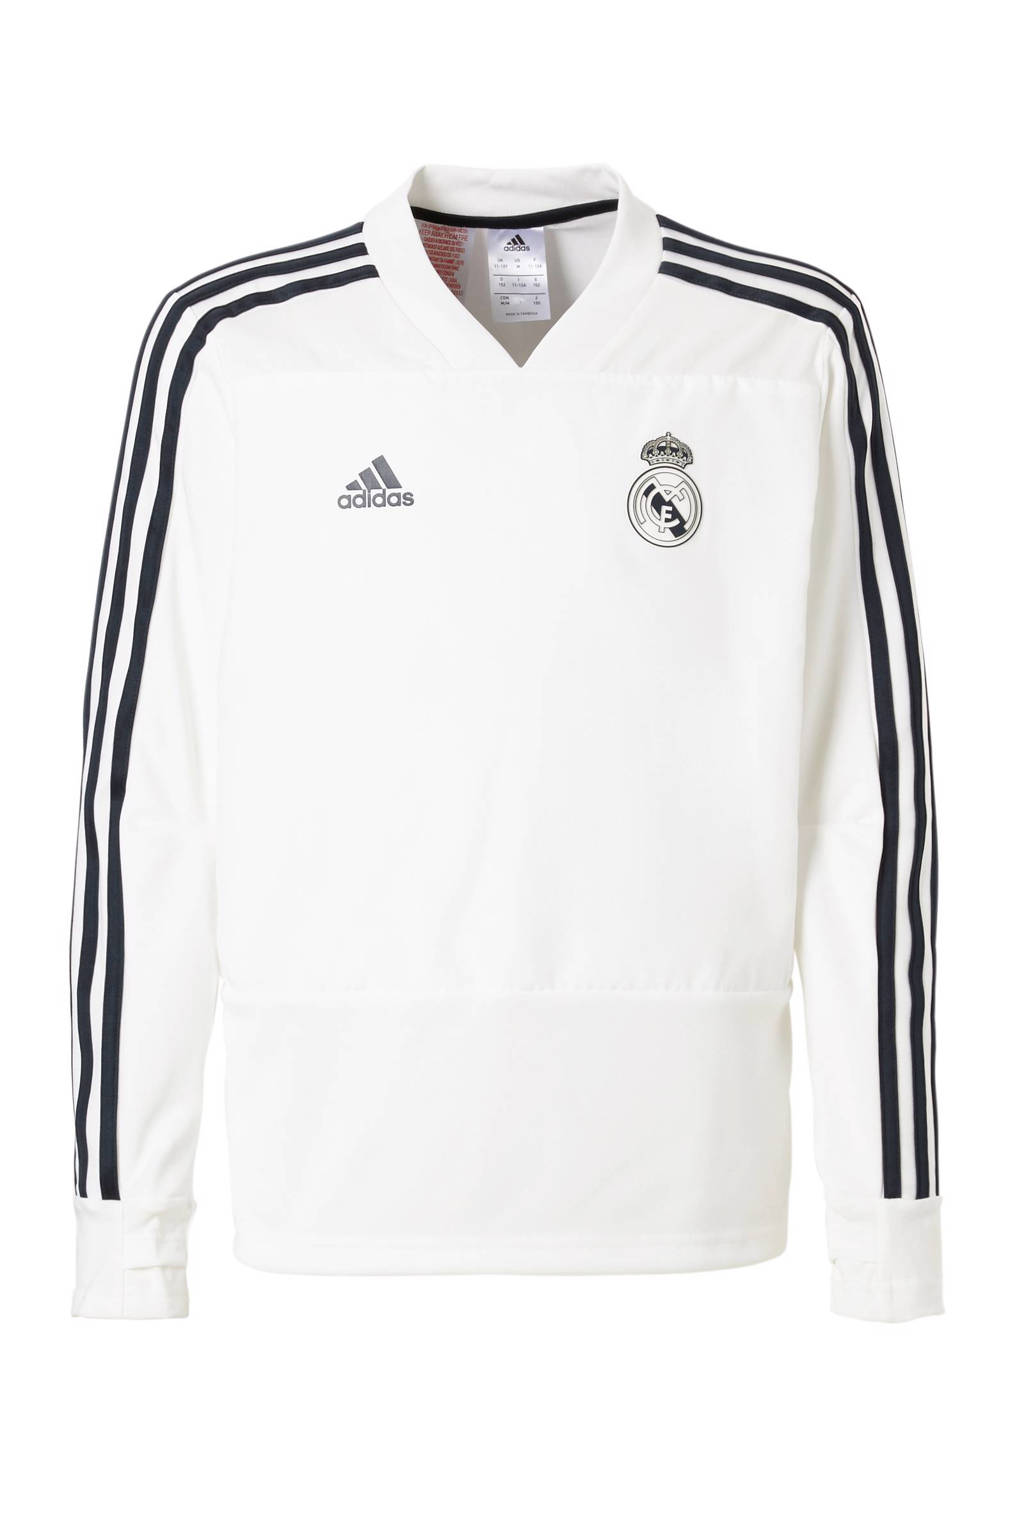 adidas performance Junior Real Madrid Thuis voetbalshirt, Wit/marine